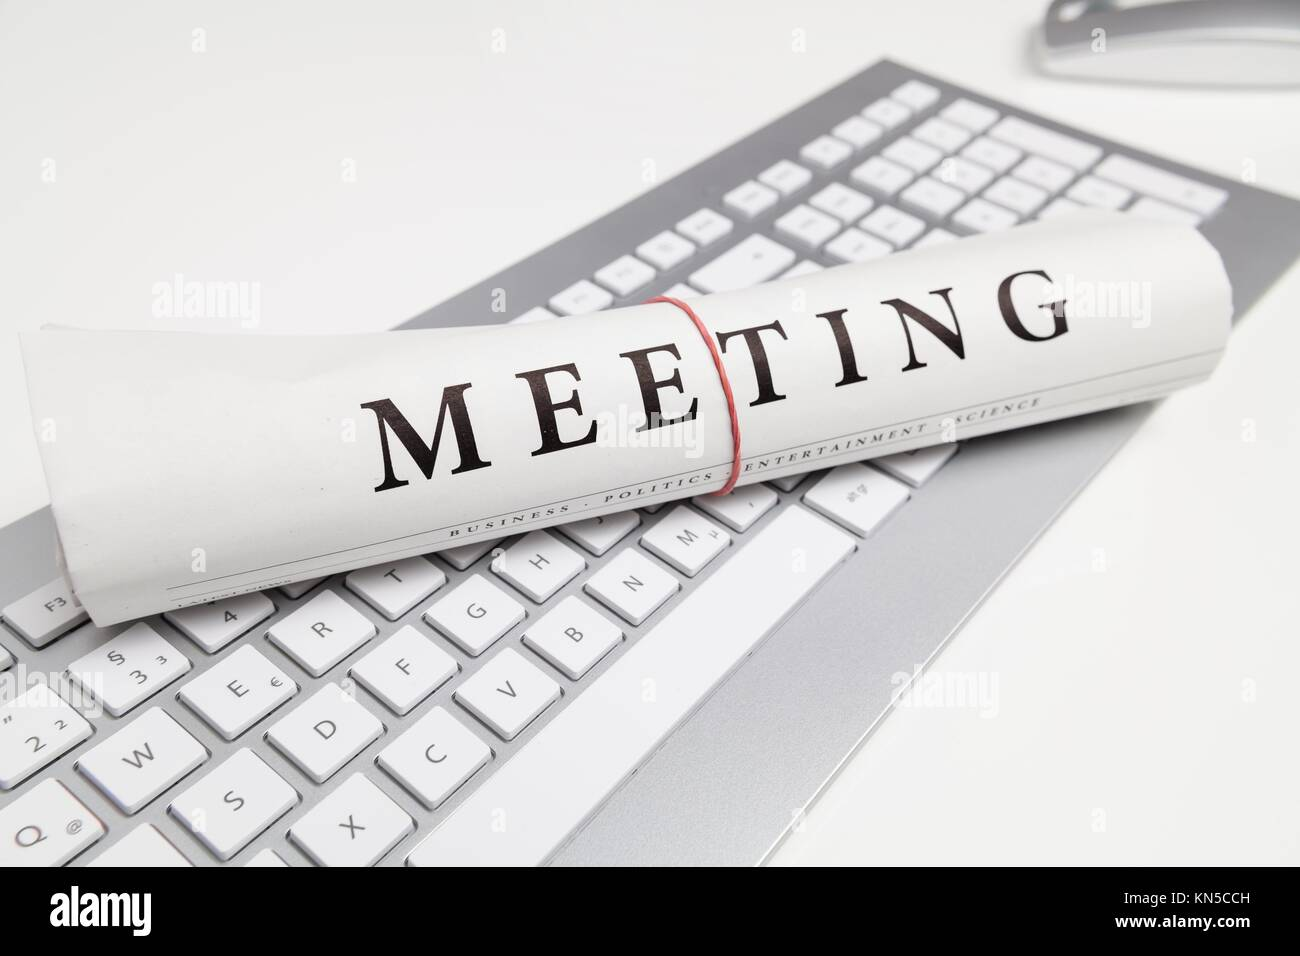 meeting written on newspaper on keyboard. - Stock Image